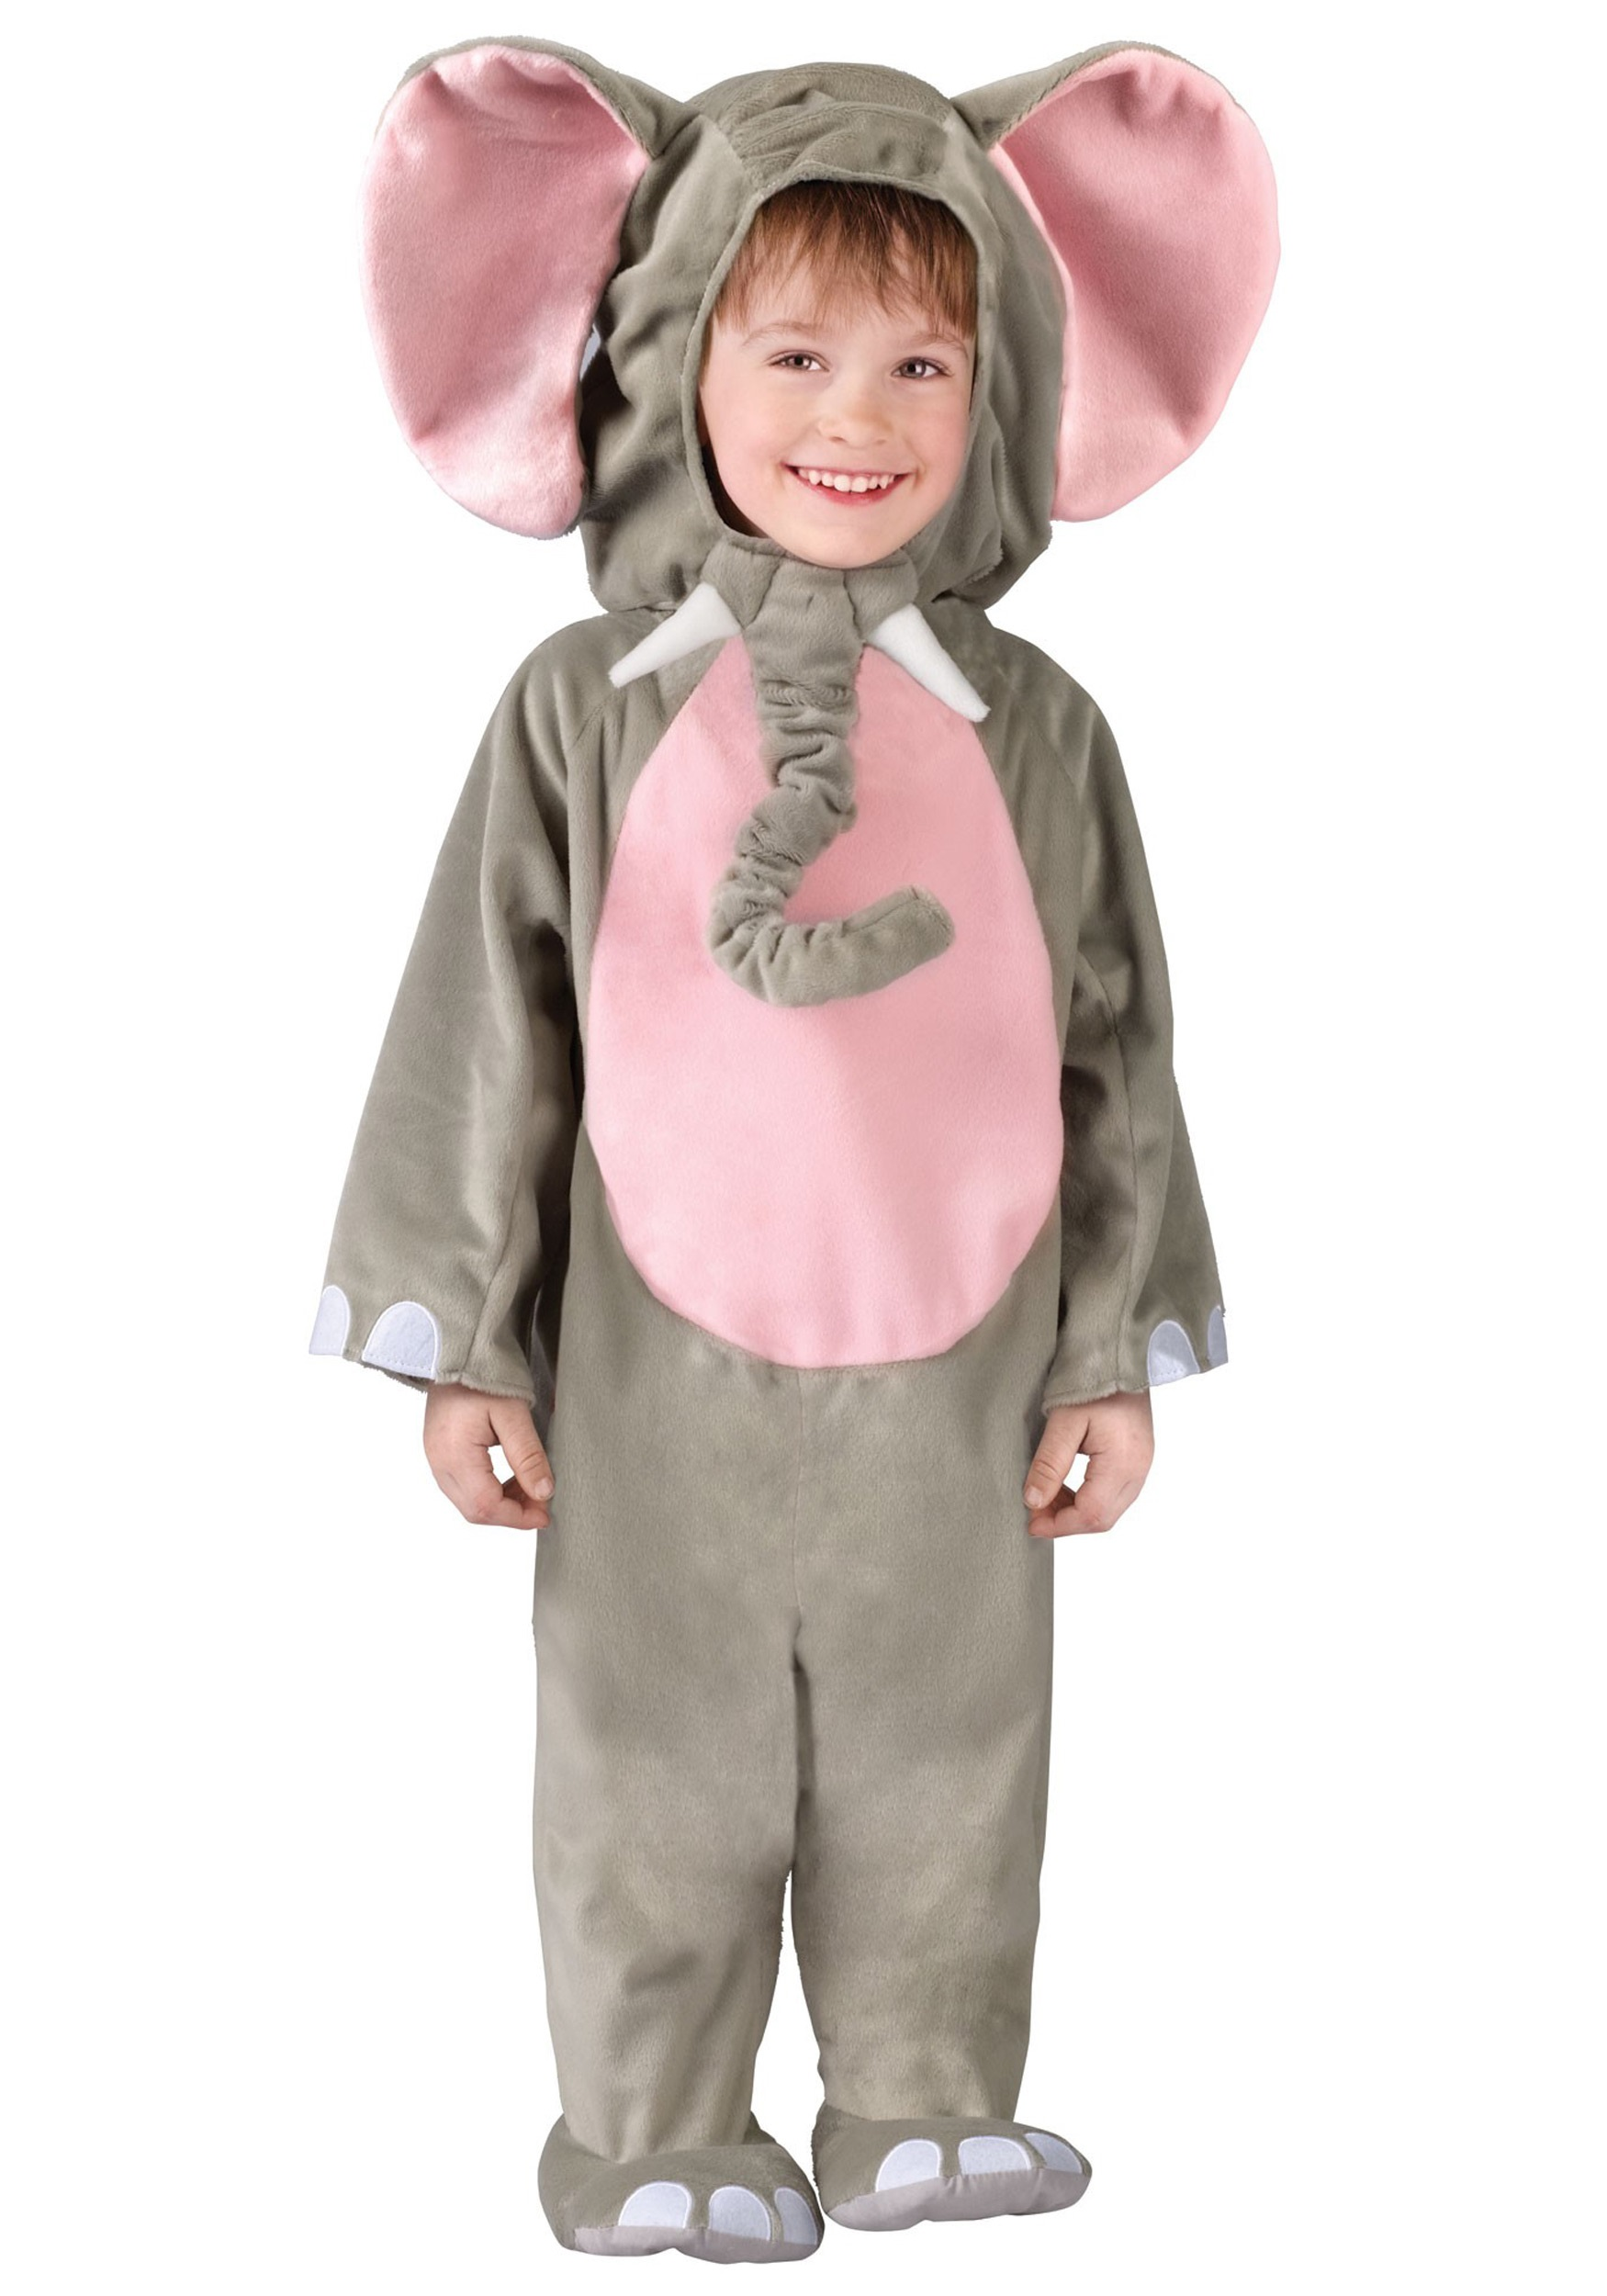 sc 1 st  Halloween Costumes : puppy halloween costume toddler  - Germanpascual.Com